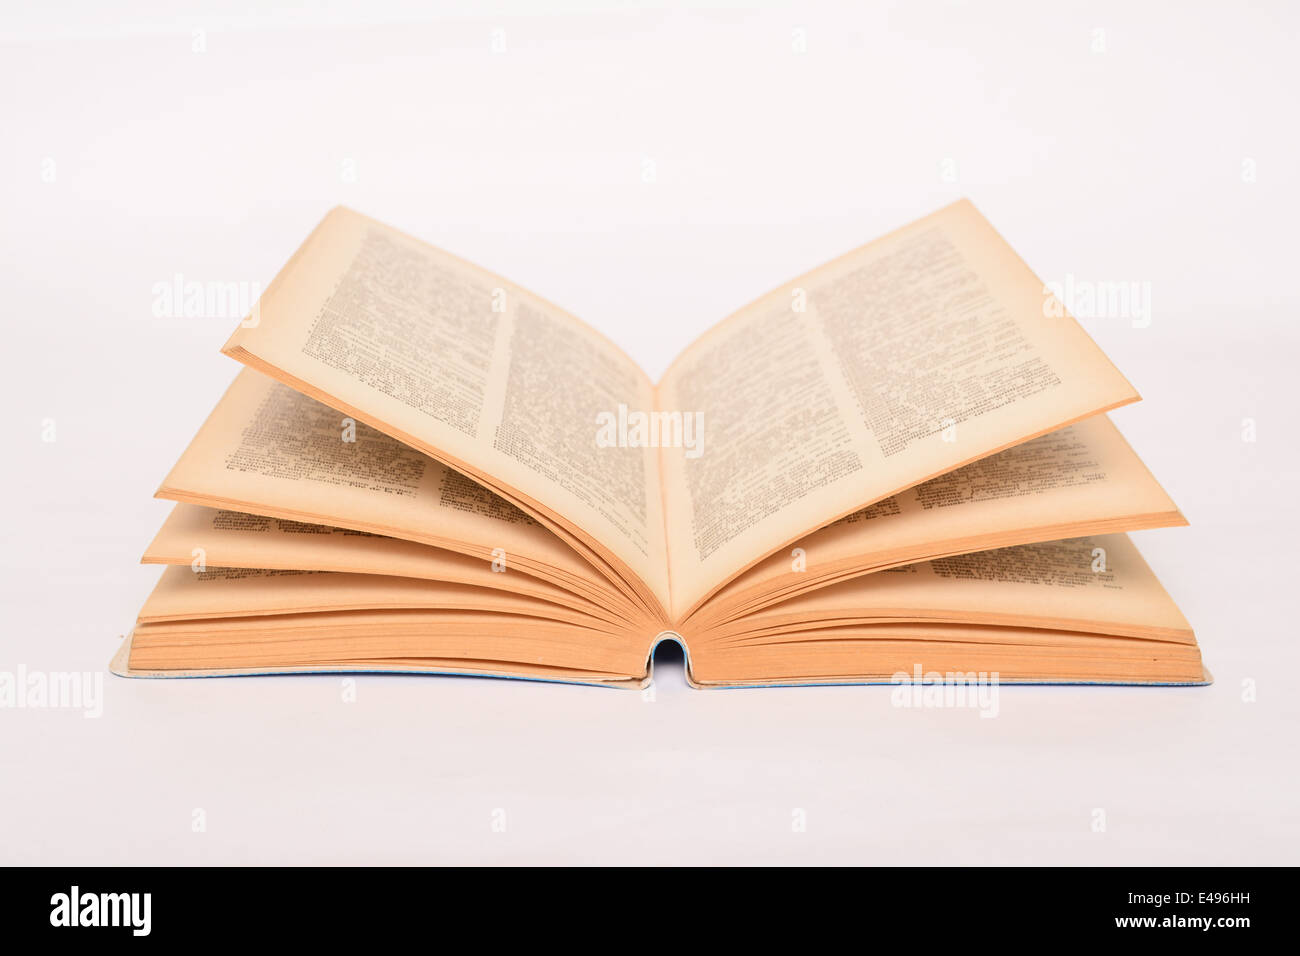 Old open book on white background - Stock Image